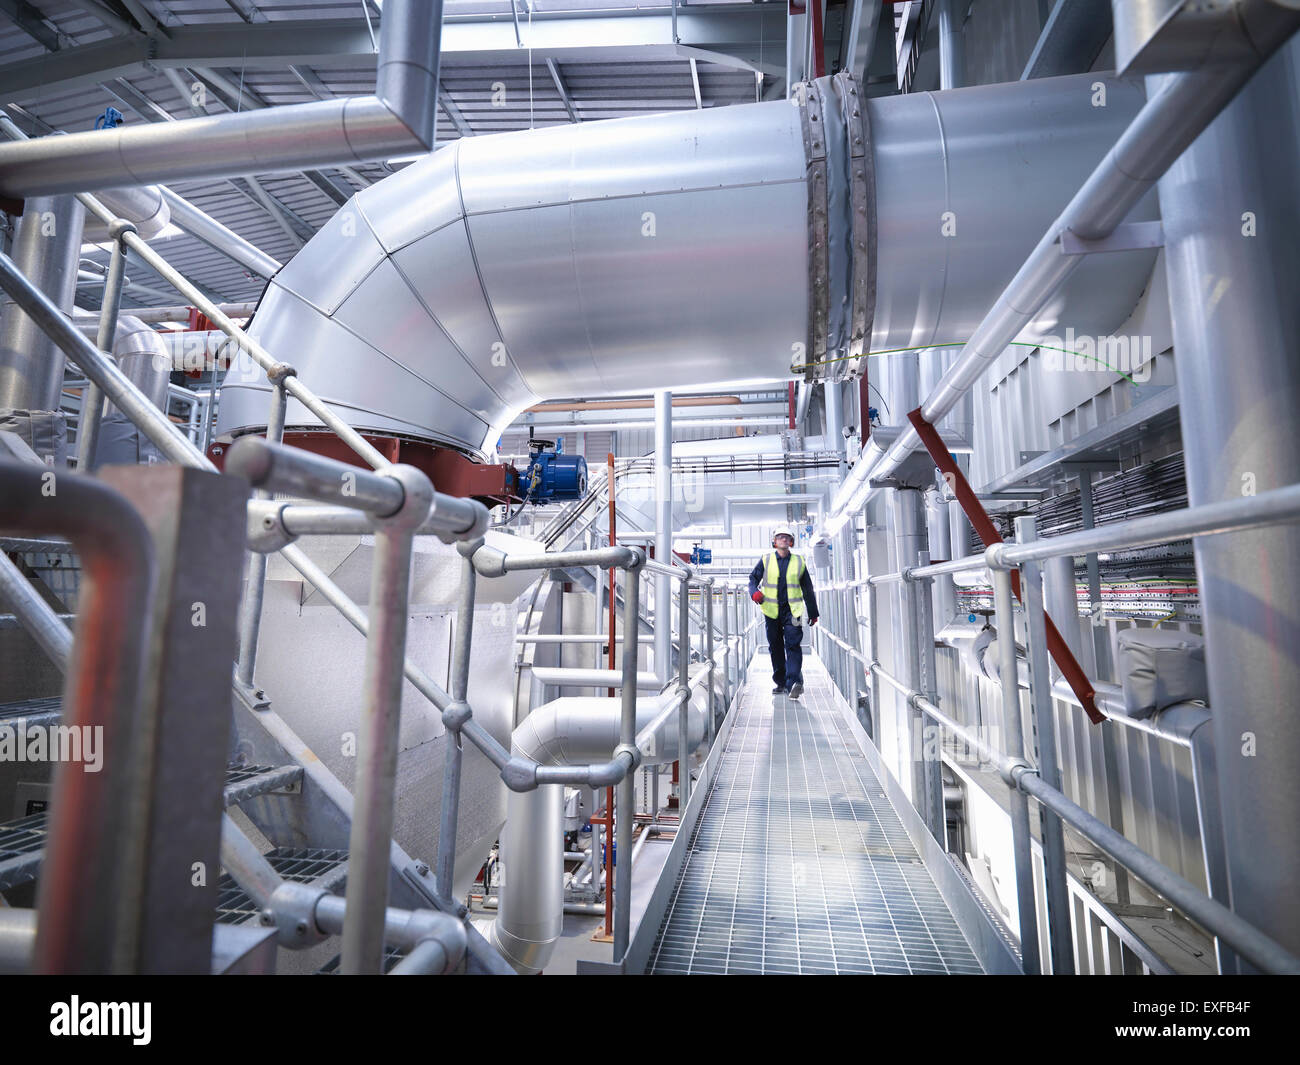 Worker on walkway in gas fired power station - Stock Image